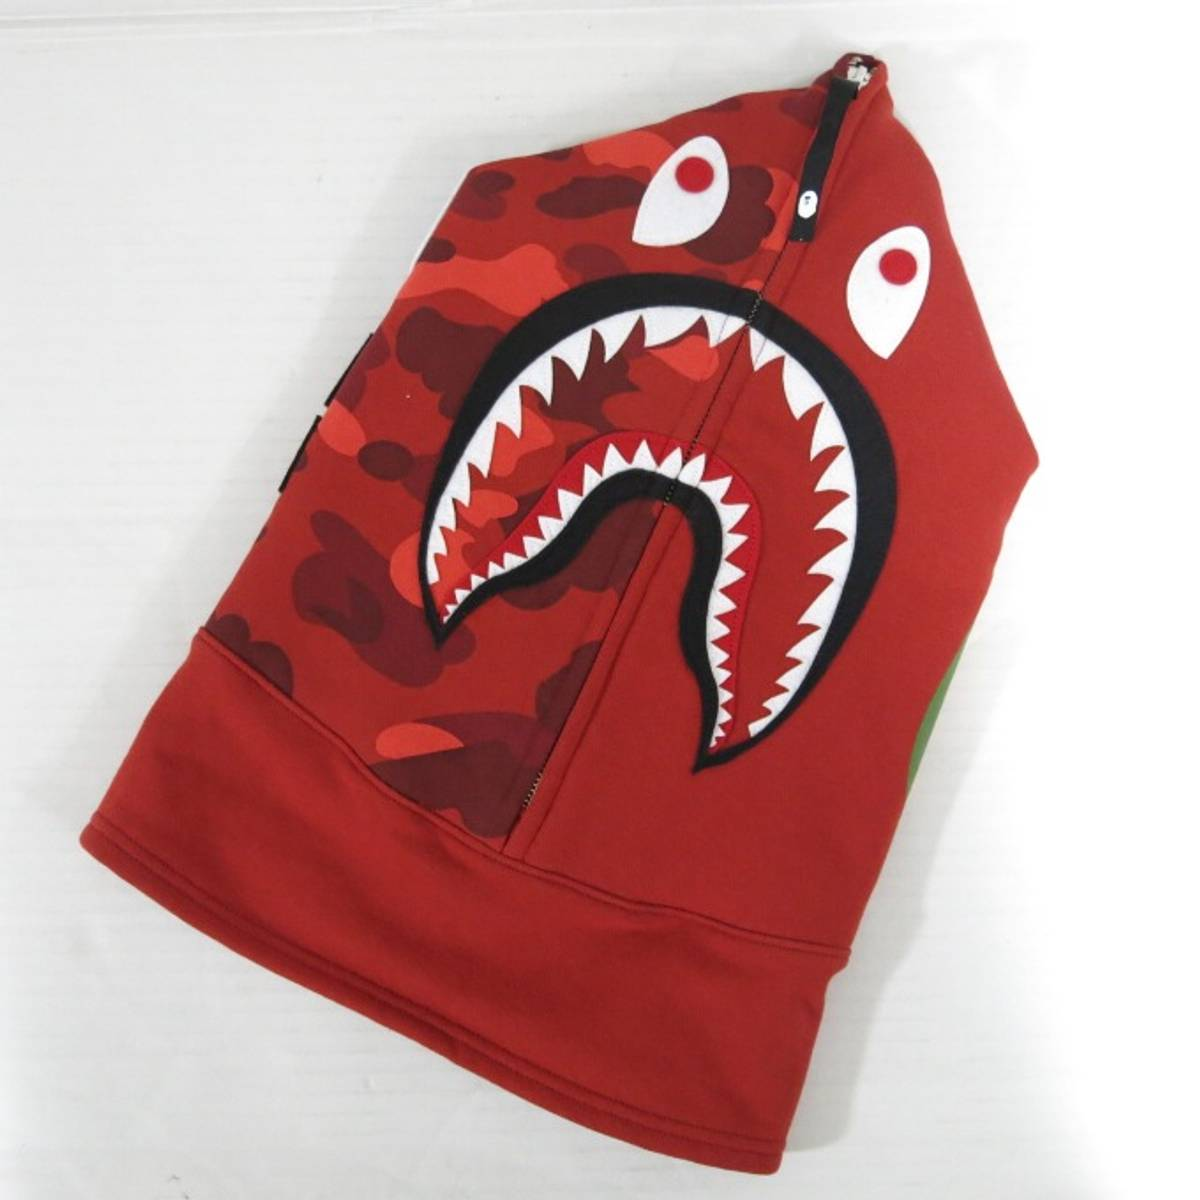 US 100/% authentic A Bathing Ape Bape ABC Camo Shark Face Mask